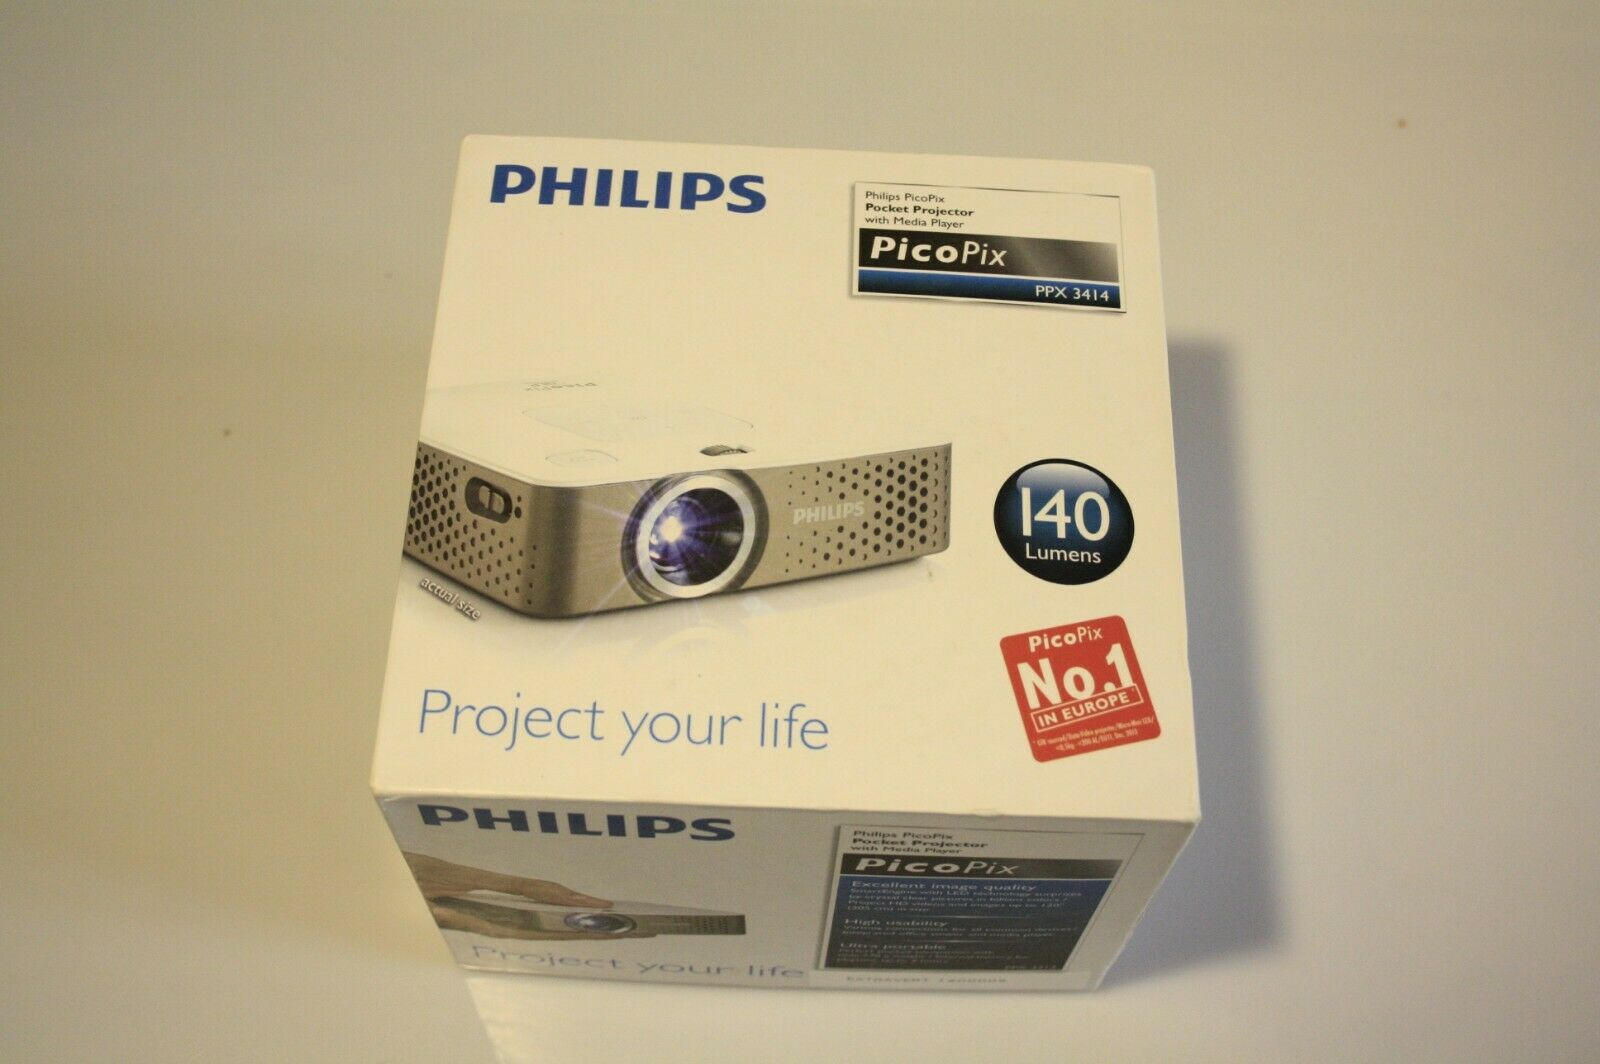 Philips PicoPix PPX 3414 Pocket Projektor Mini-Beamer Superzustand !!